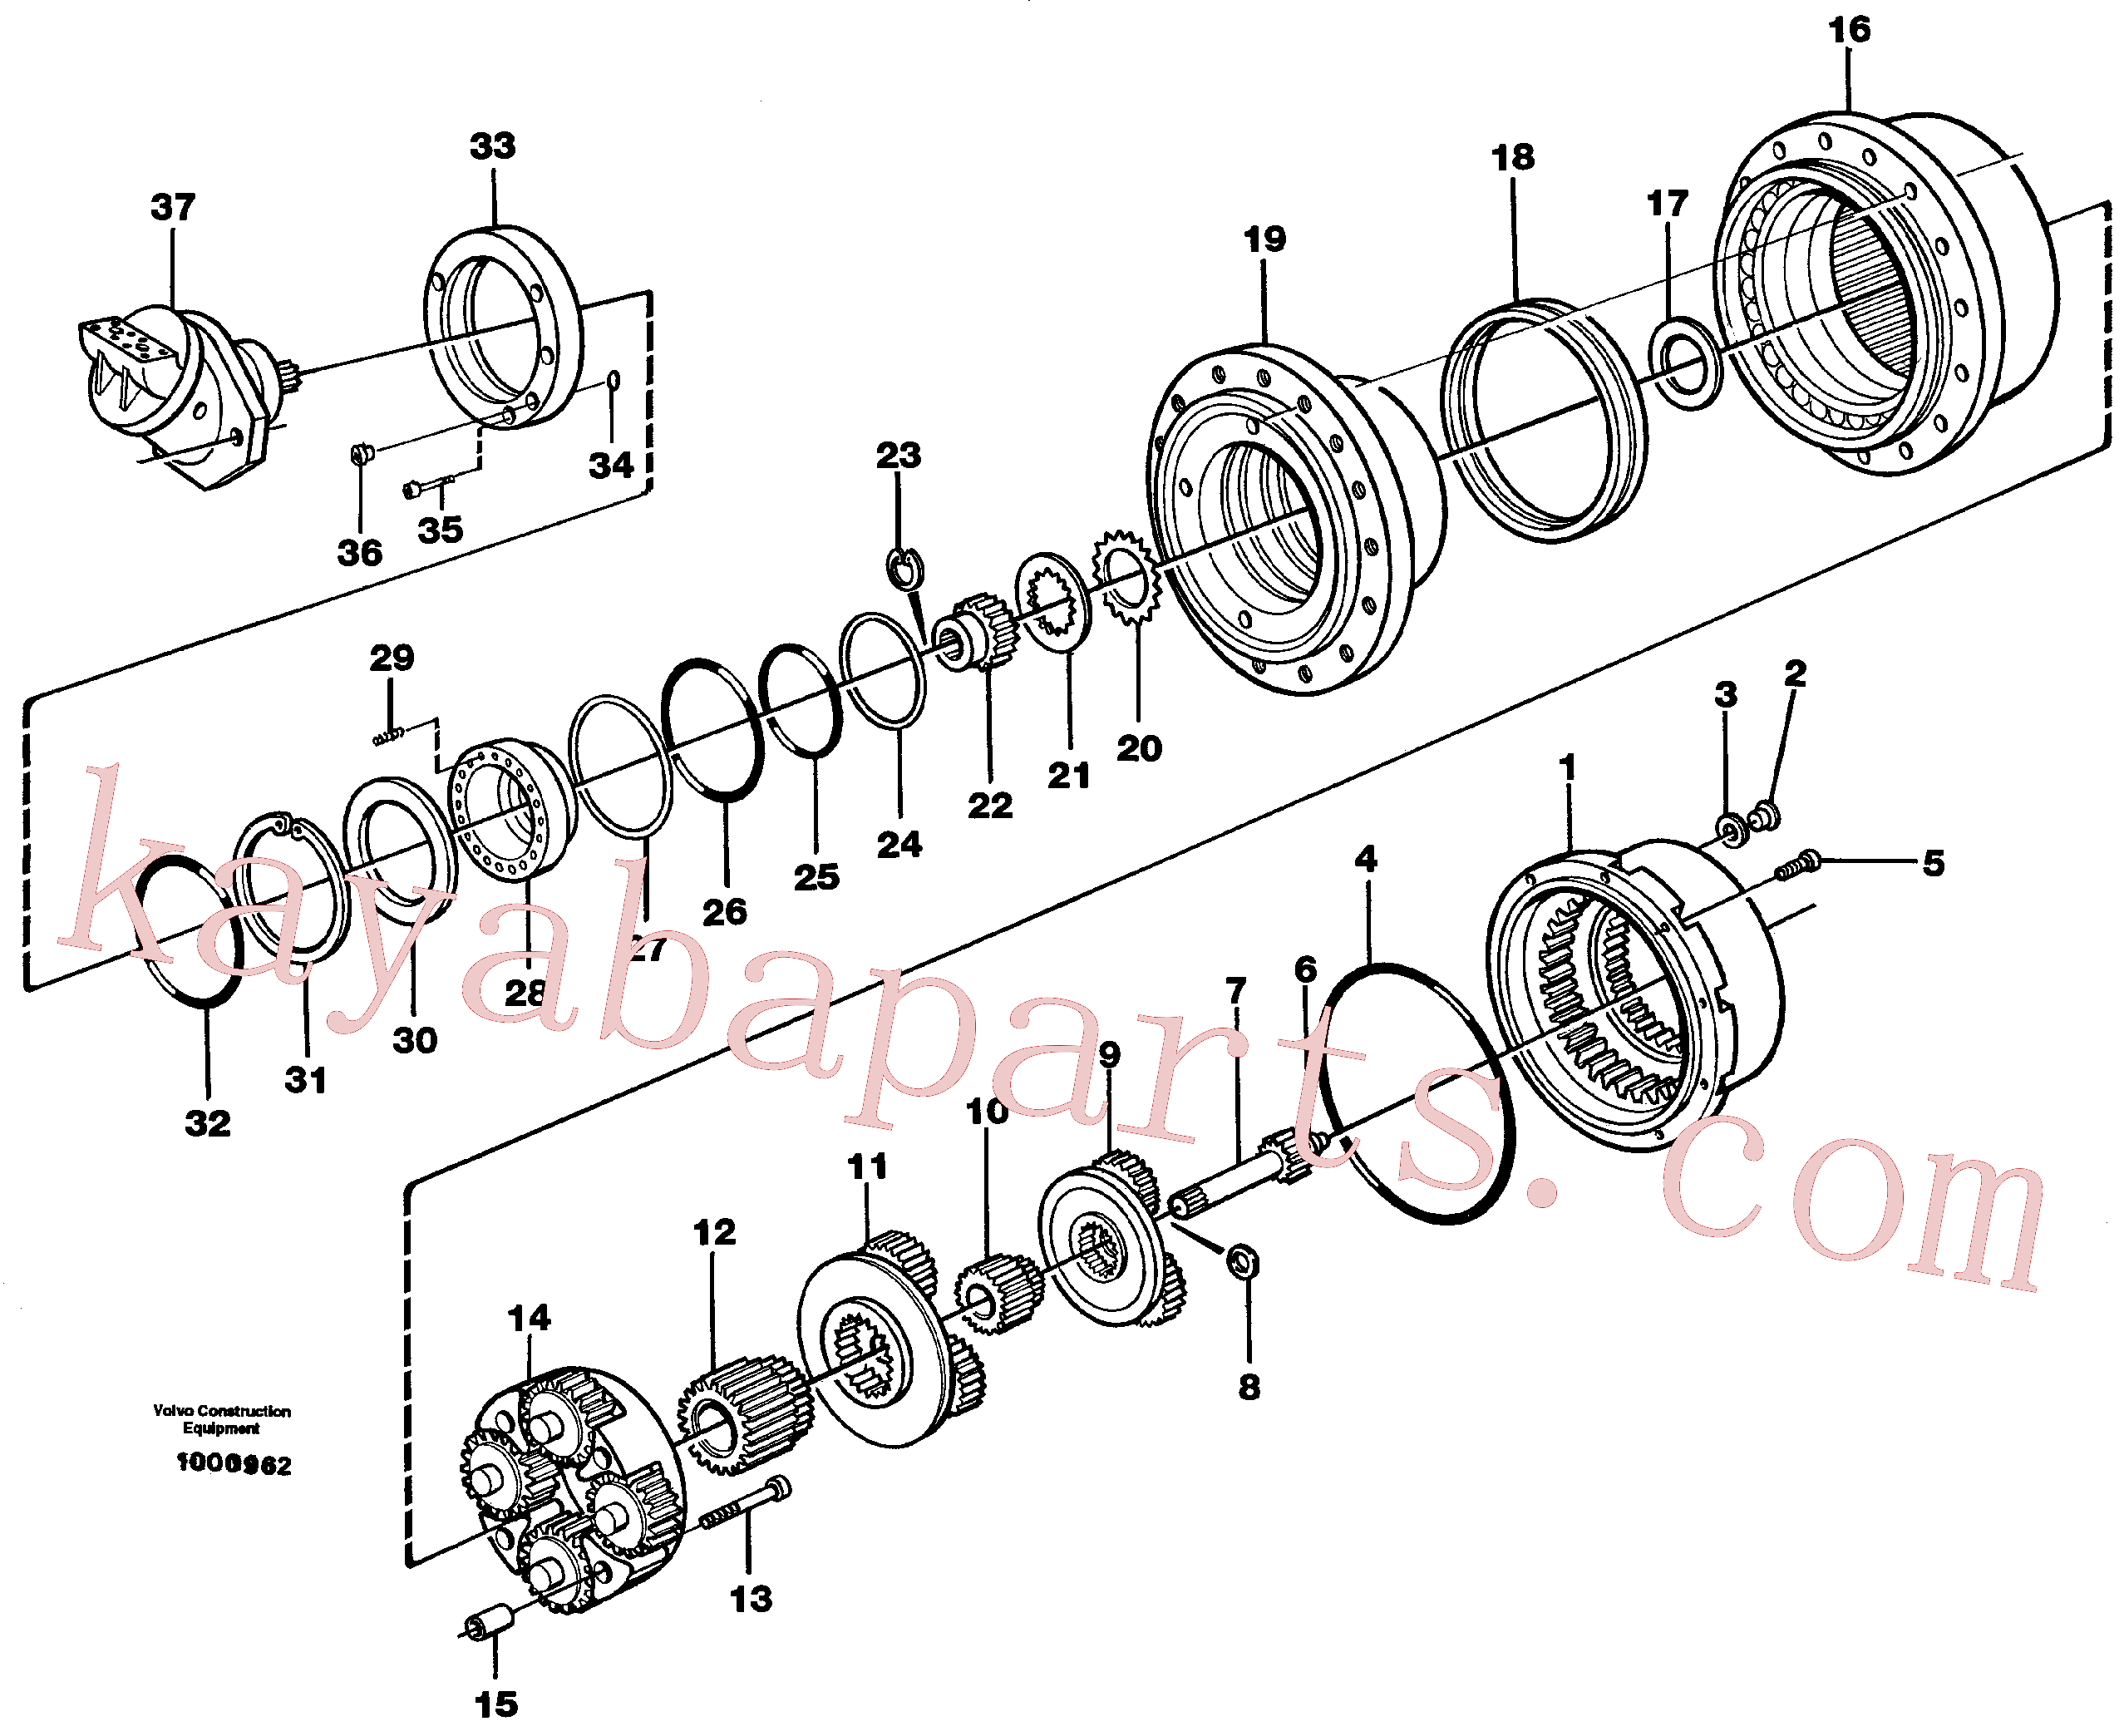 VOE11713105 for Volvo Planetary gear, travel(1000962 assembly)